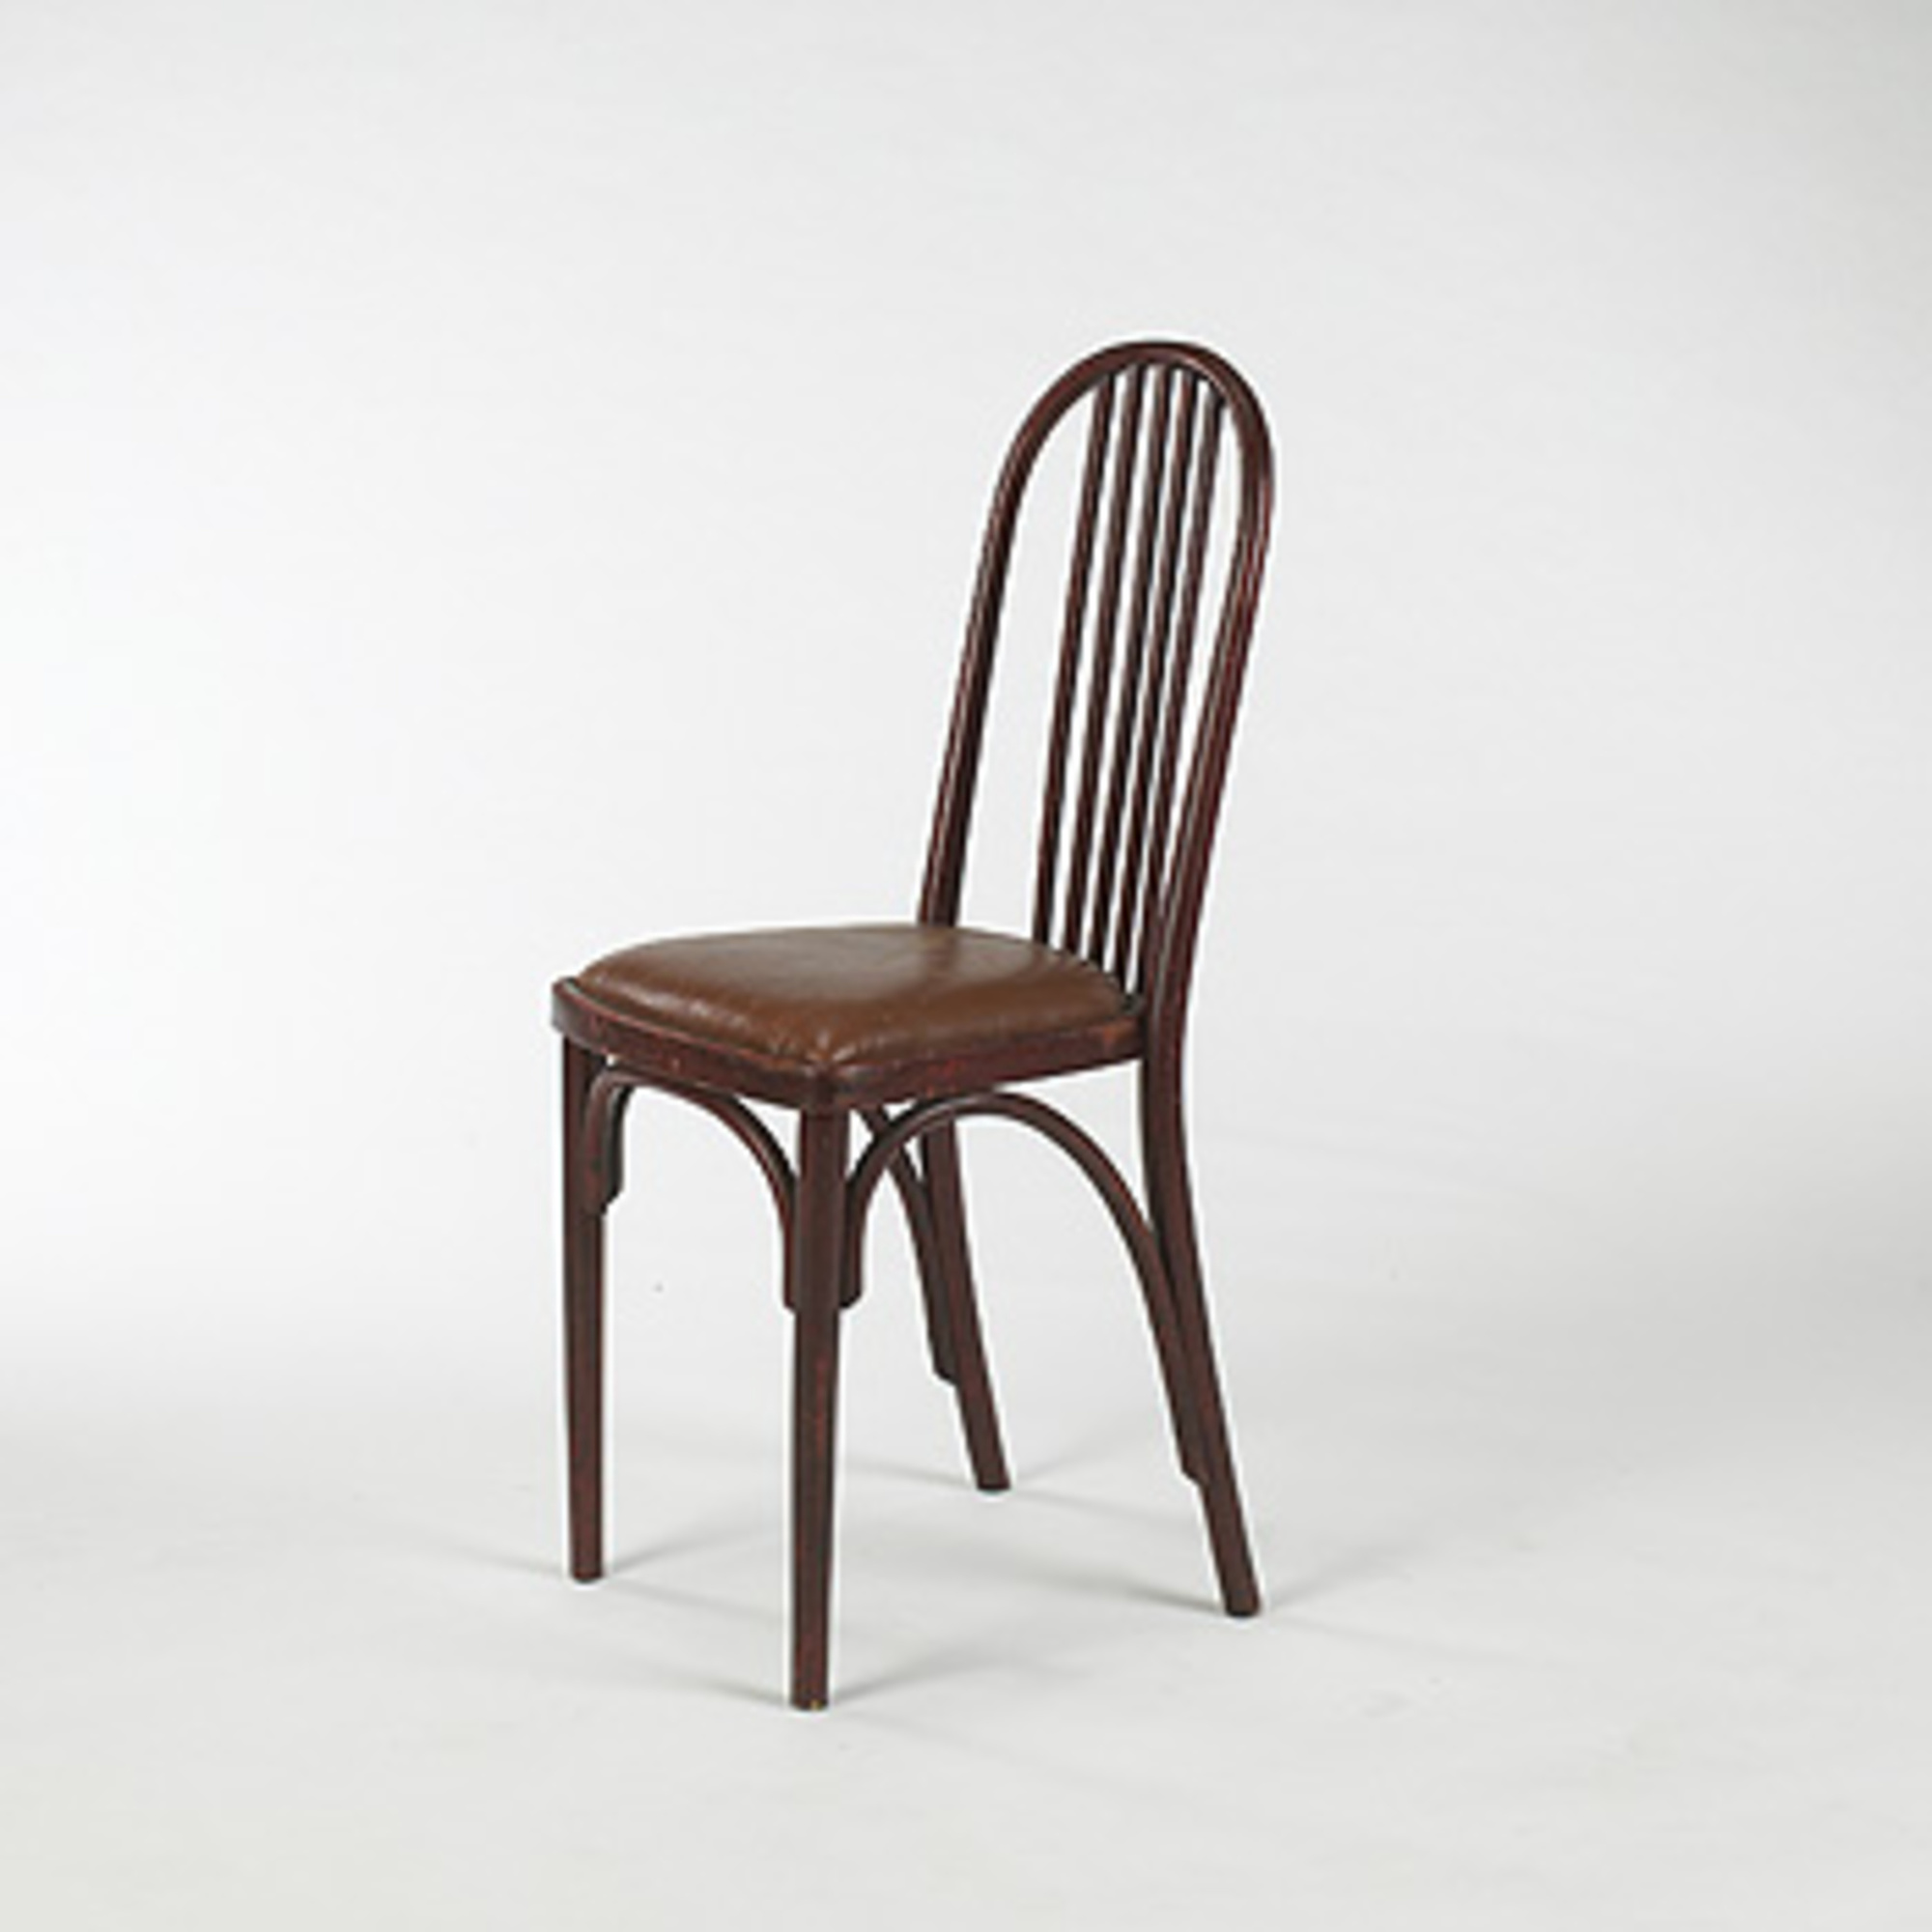 255 Josef Hoffmann Bentwood Side Chair Modern Design 20 March 2005 Auctions Wright Of Art And